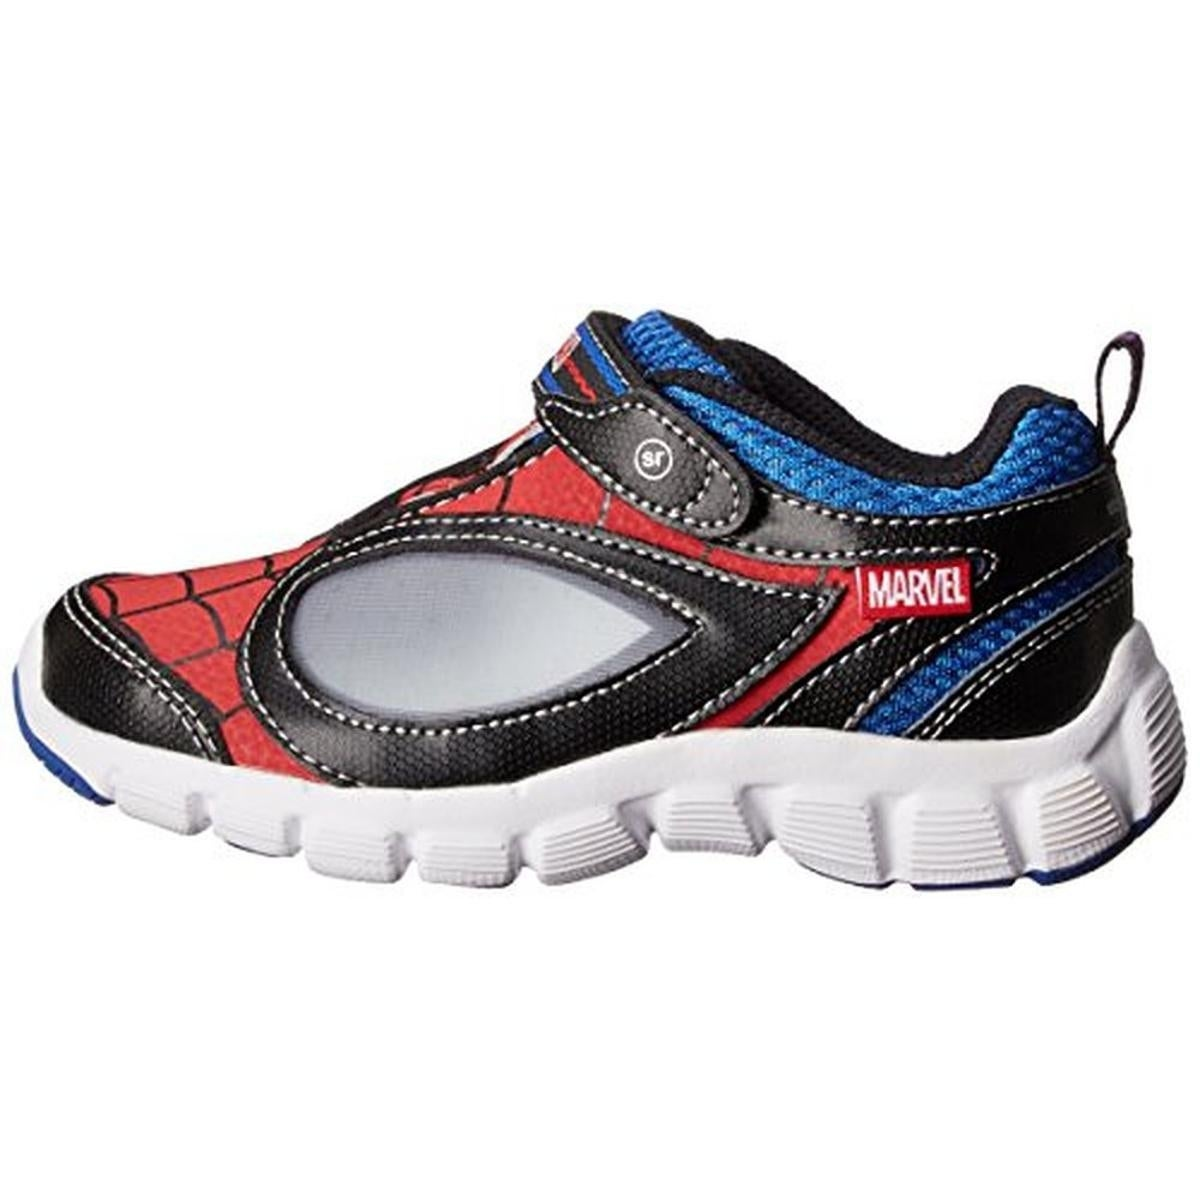 Stride Rite Boys Spidey Reflex Fashion Sneakers Light Up - Free Shipping On  Orders Over $45 - Overstock.com - 20505904